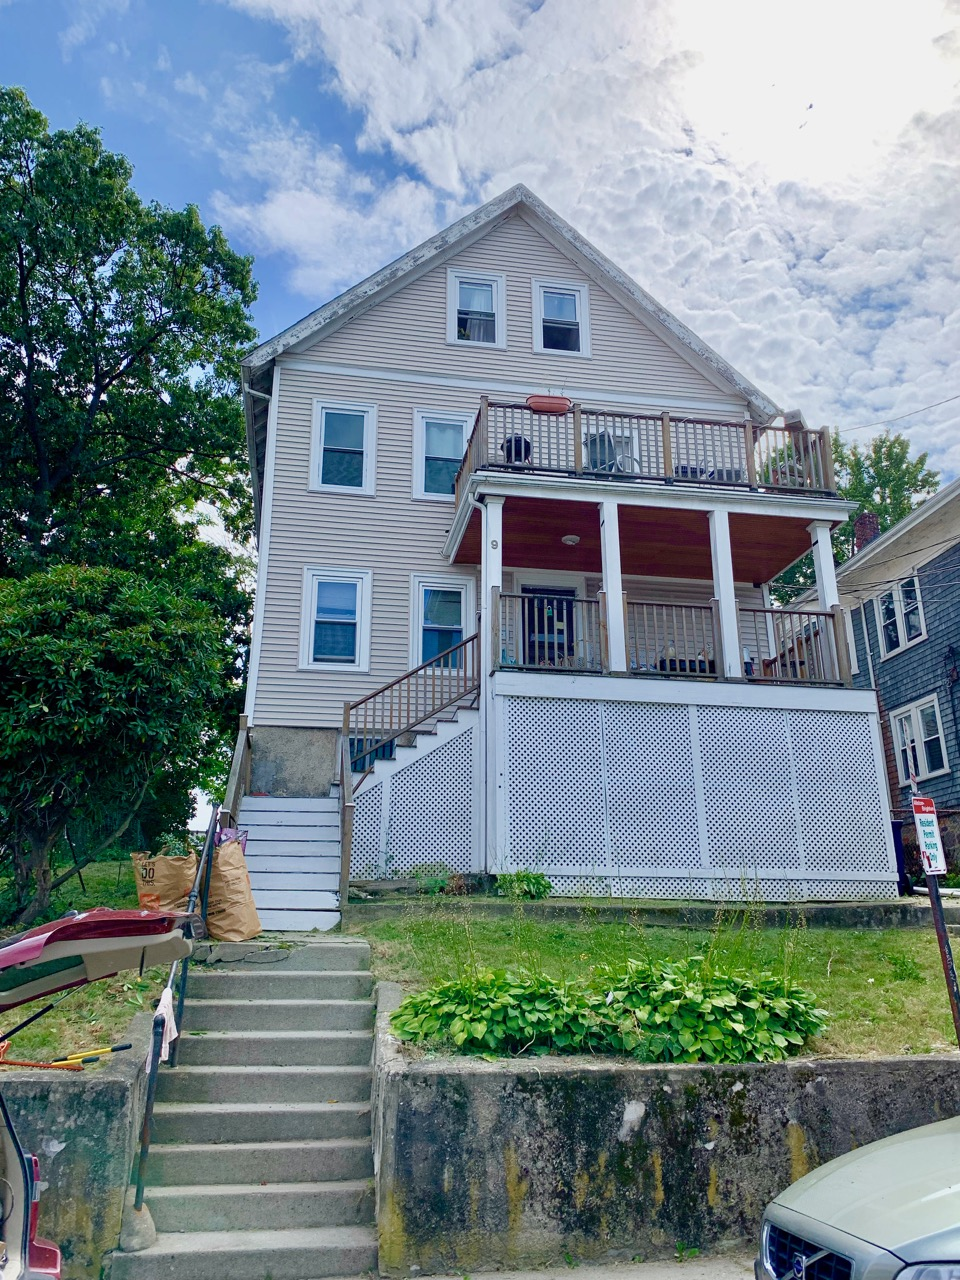 3 Beds, 1 Bath apartment in Boston for $2,250